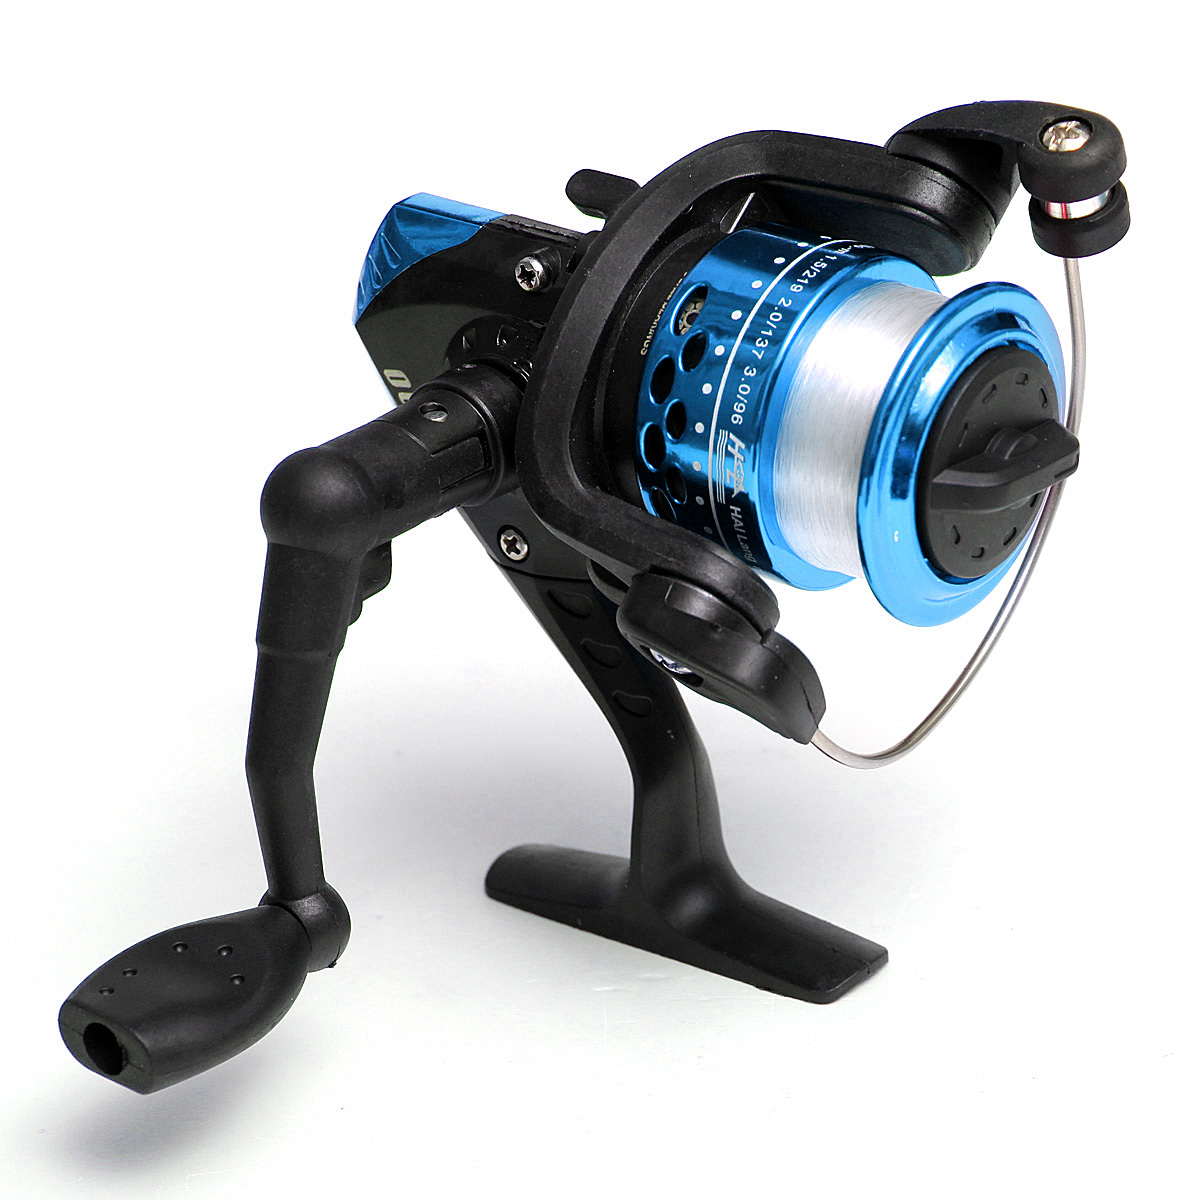 Hot sale new 3bb 5 2 1 front drag fly fishing reels for Fly fishing reels for sale